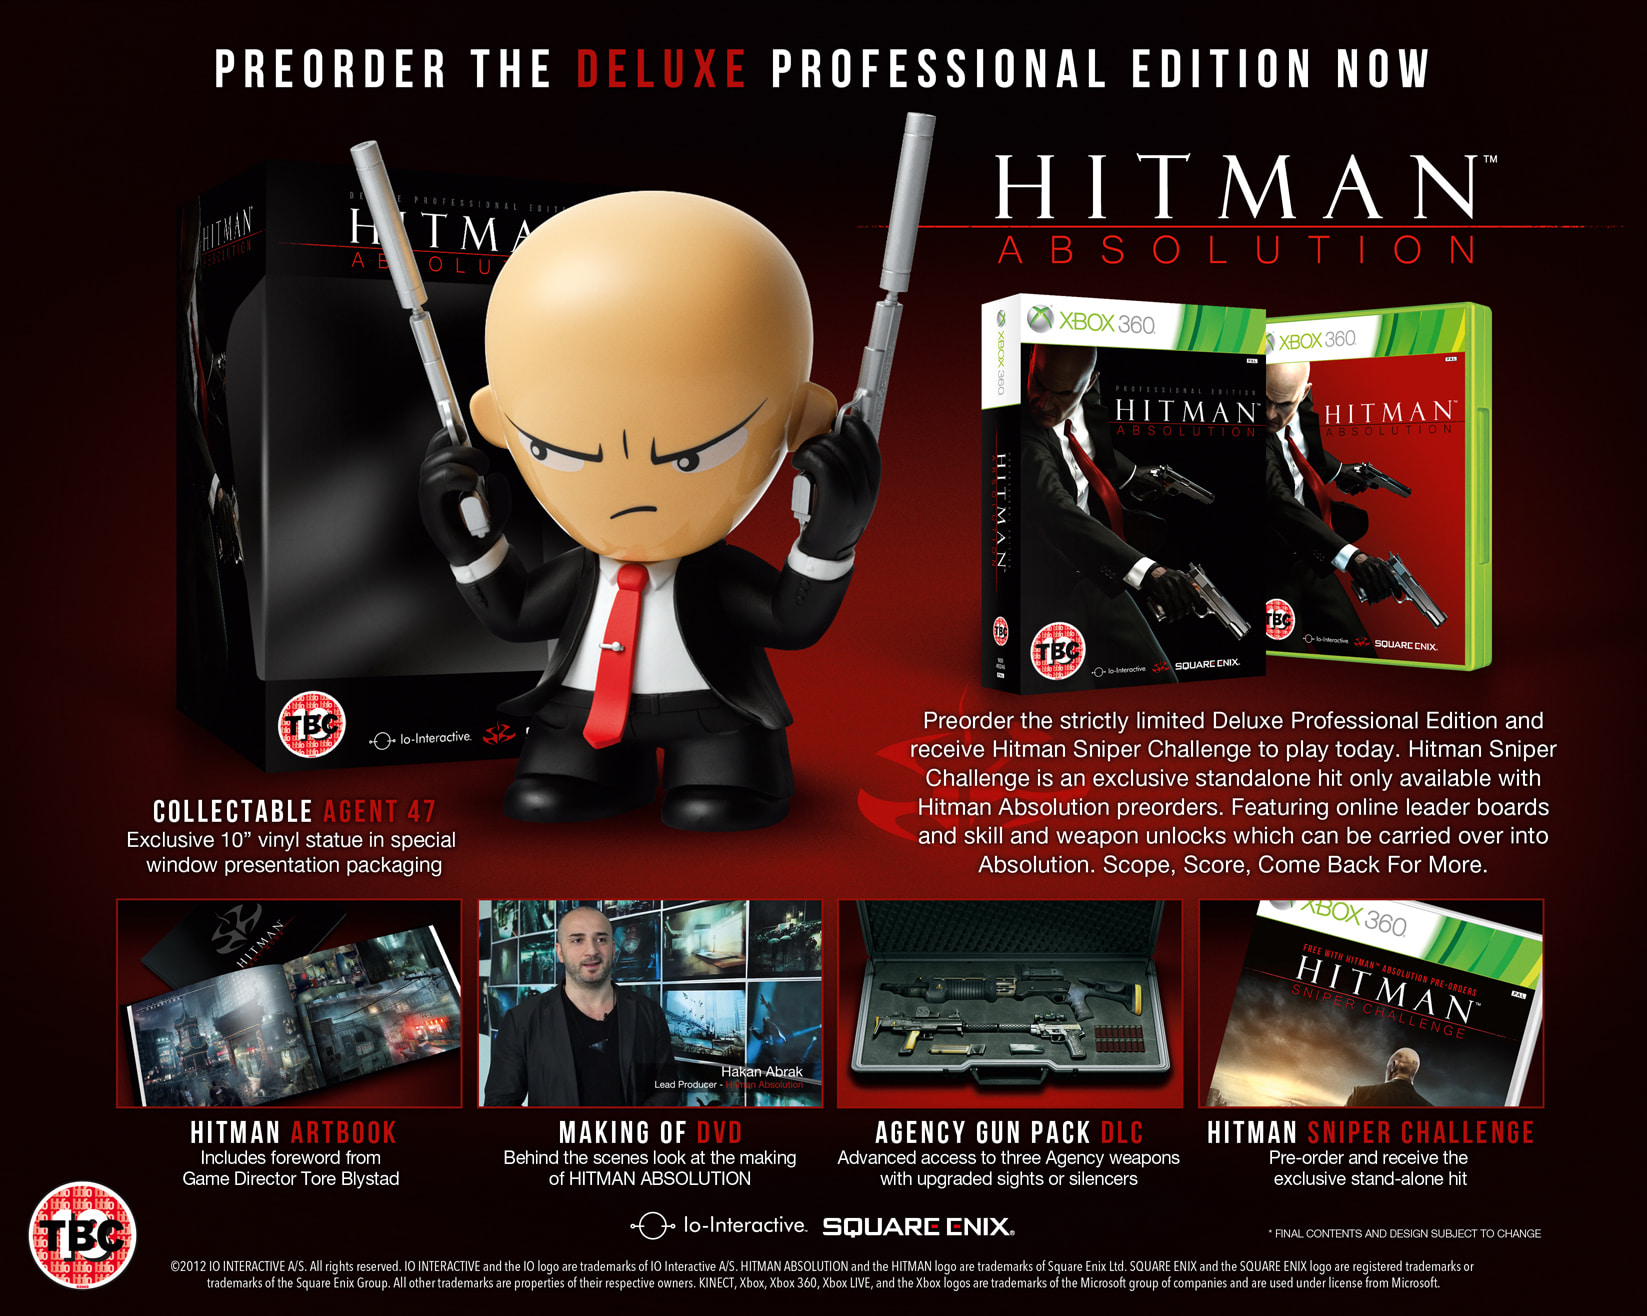 Hitman Absolution Deluxe Professional Edition for Xbox 360 at GAME